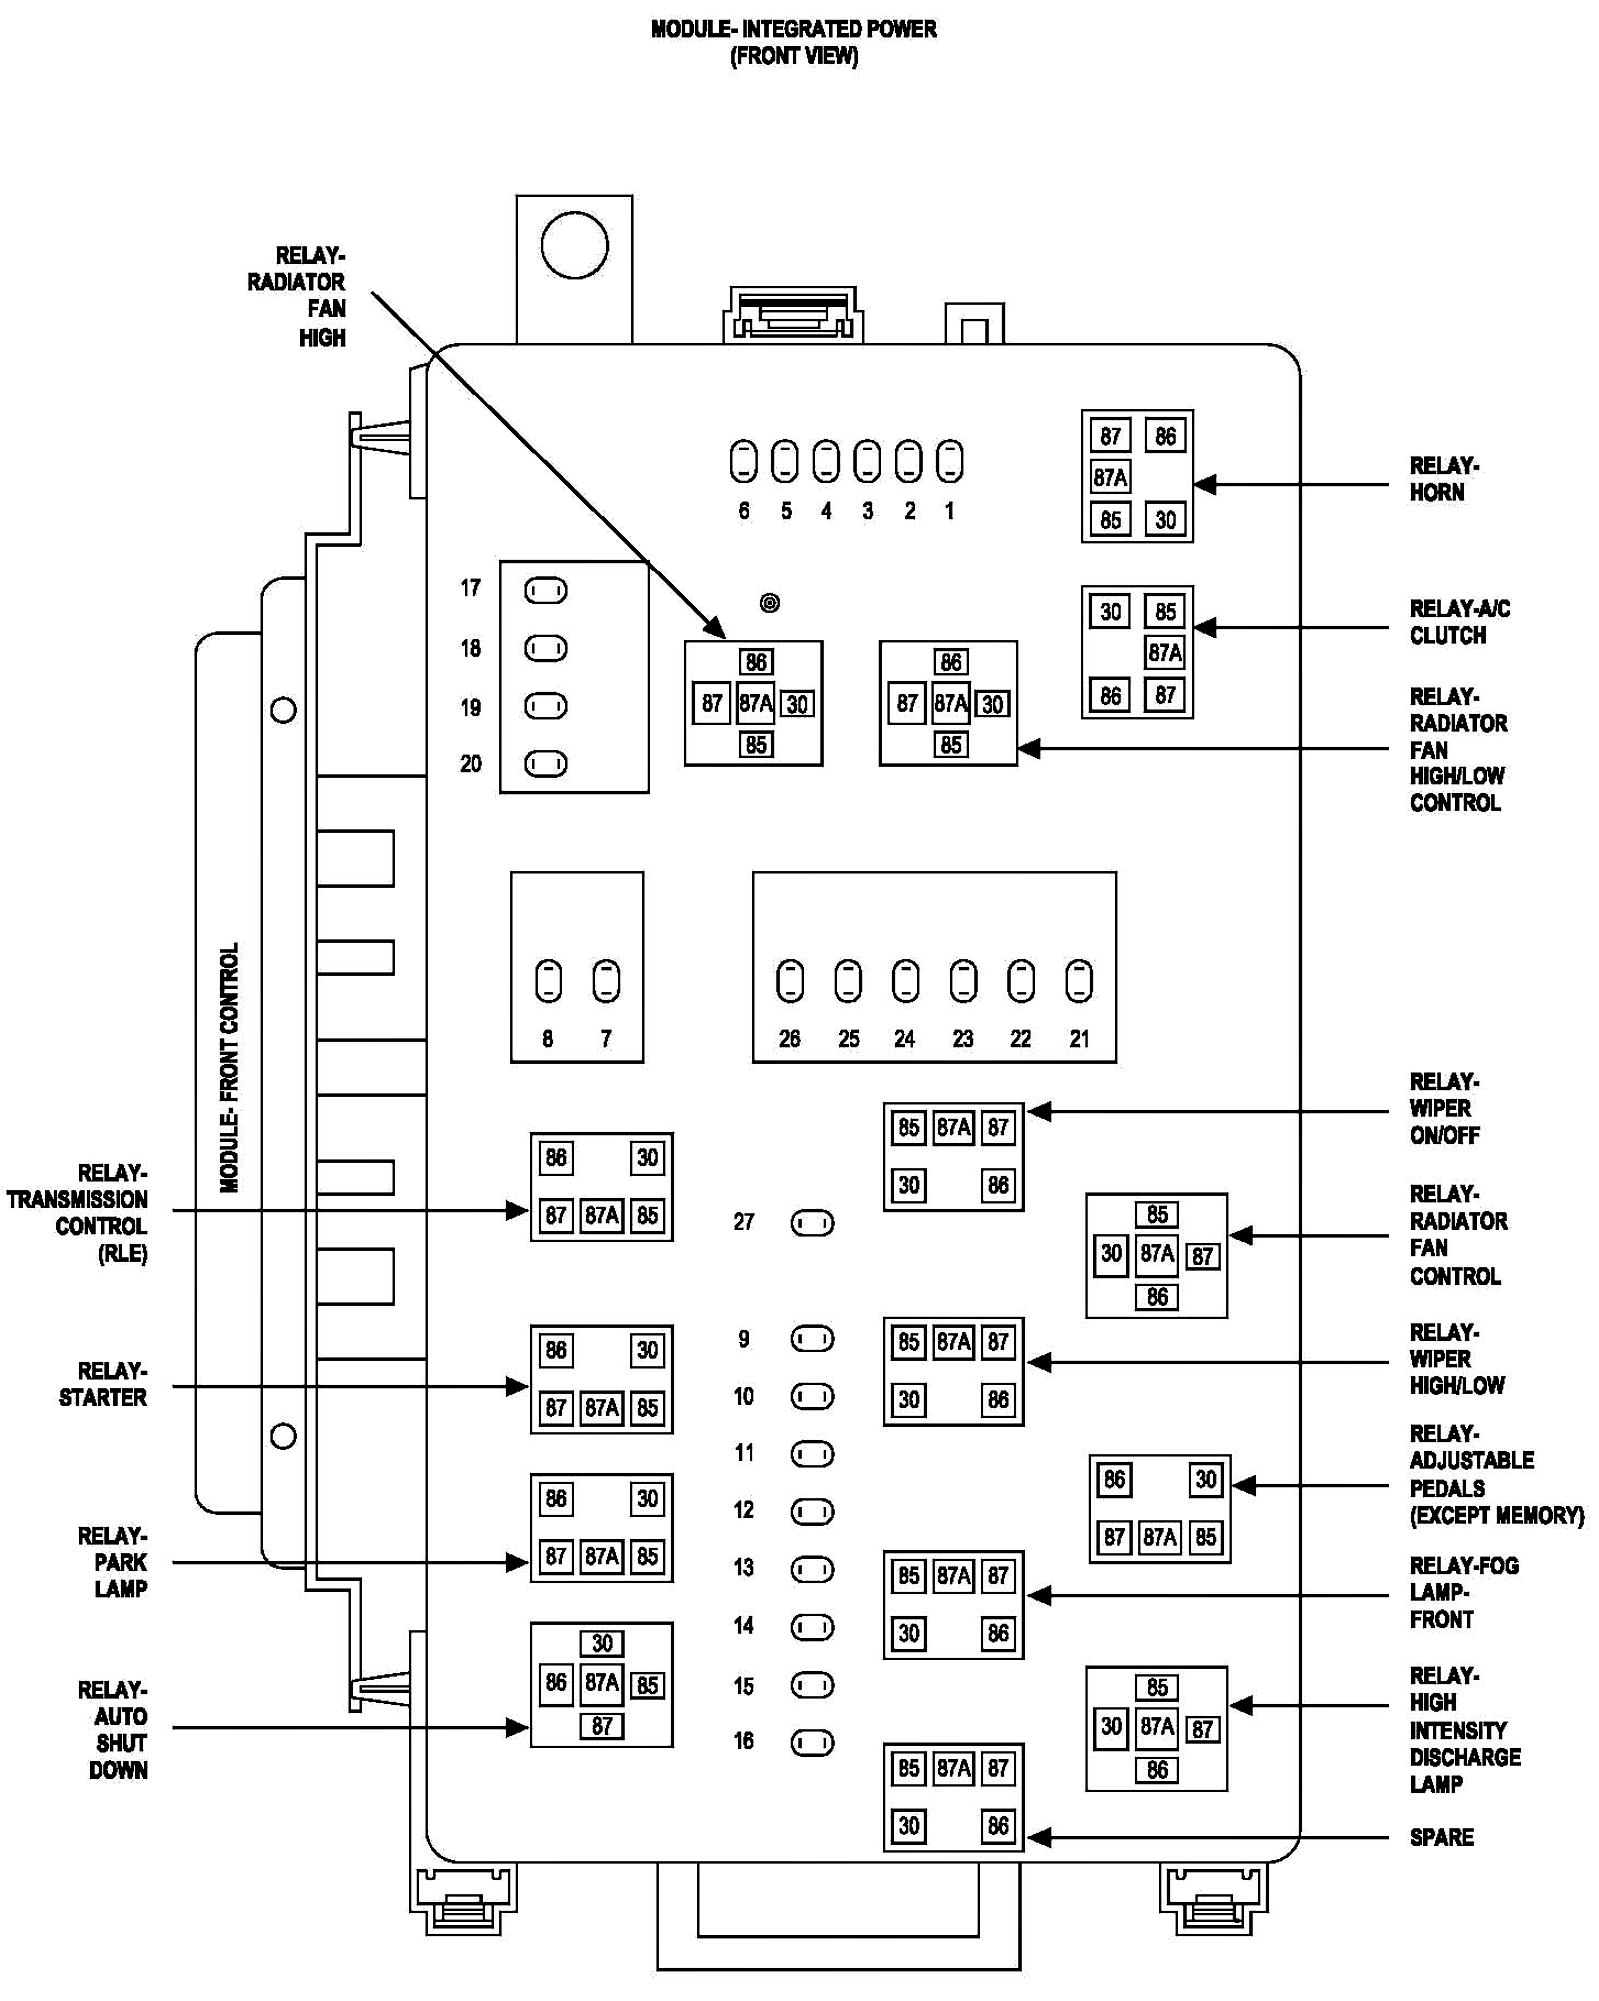 [DIAGRAM] Chrysler Sebring 2007 Fuse Manual FULL Version